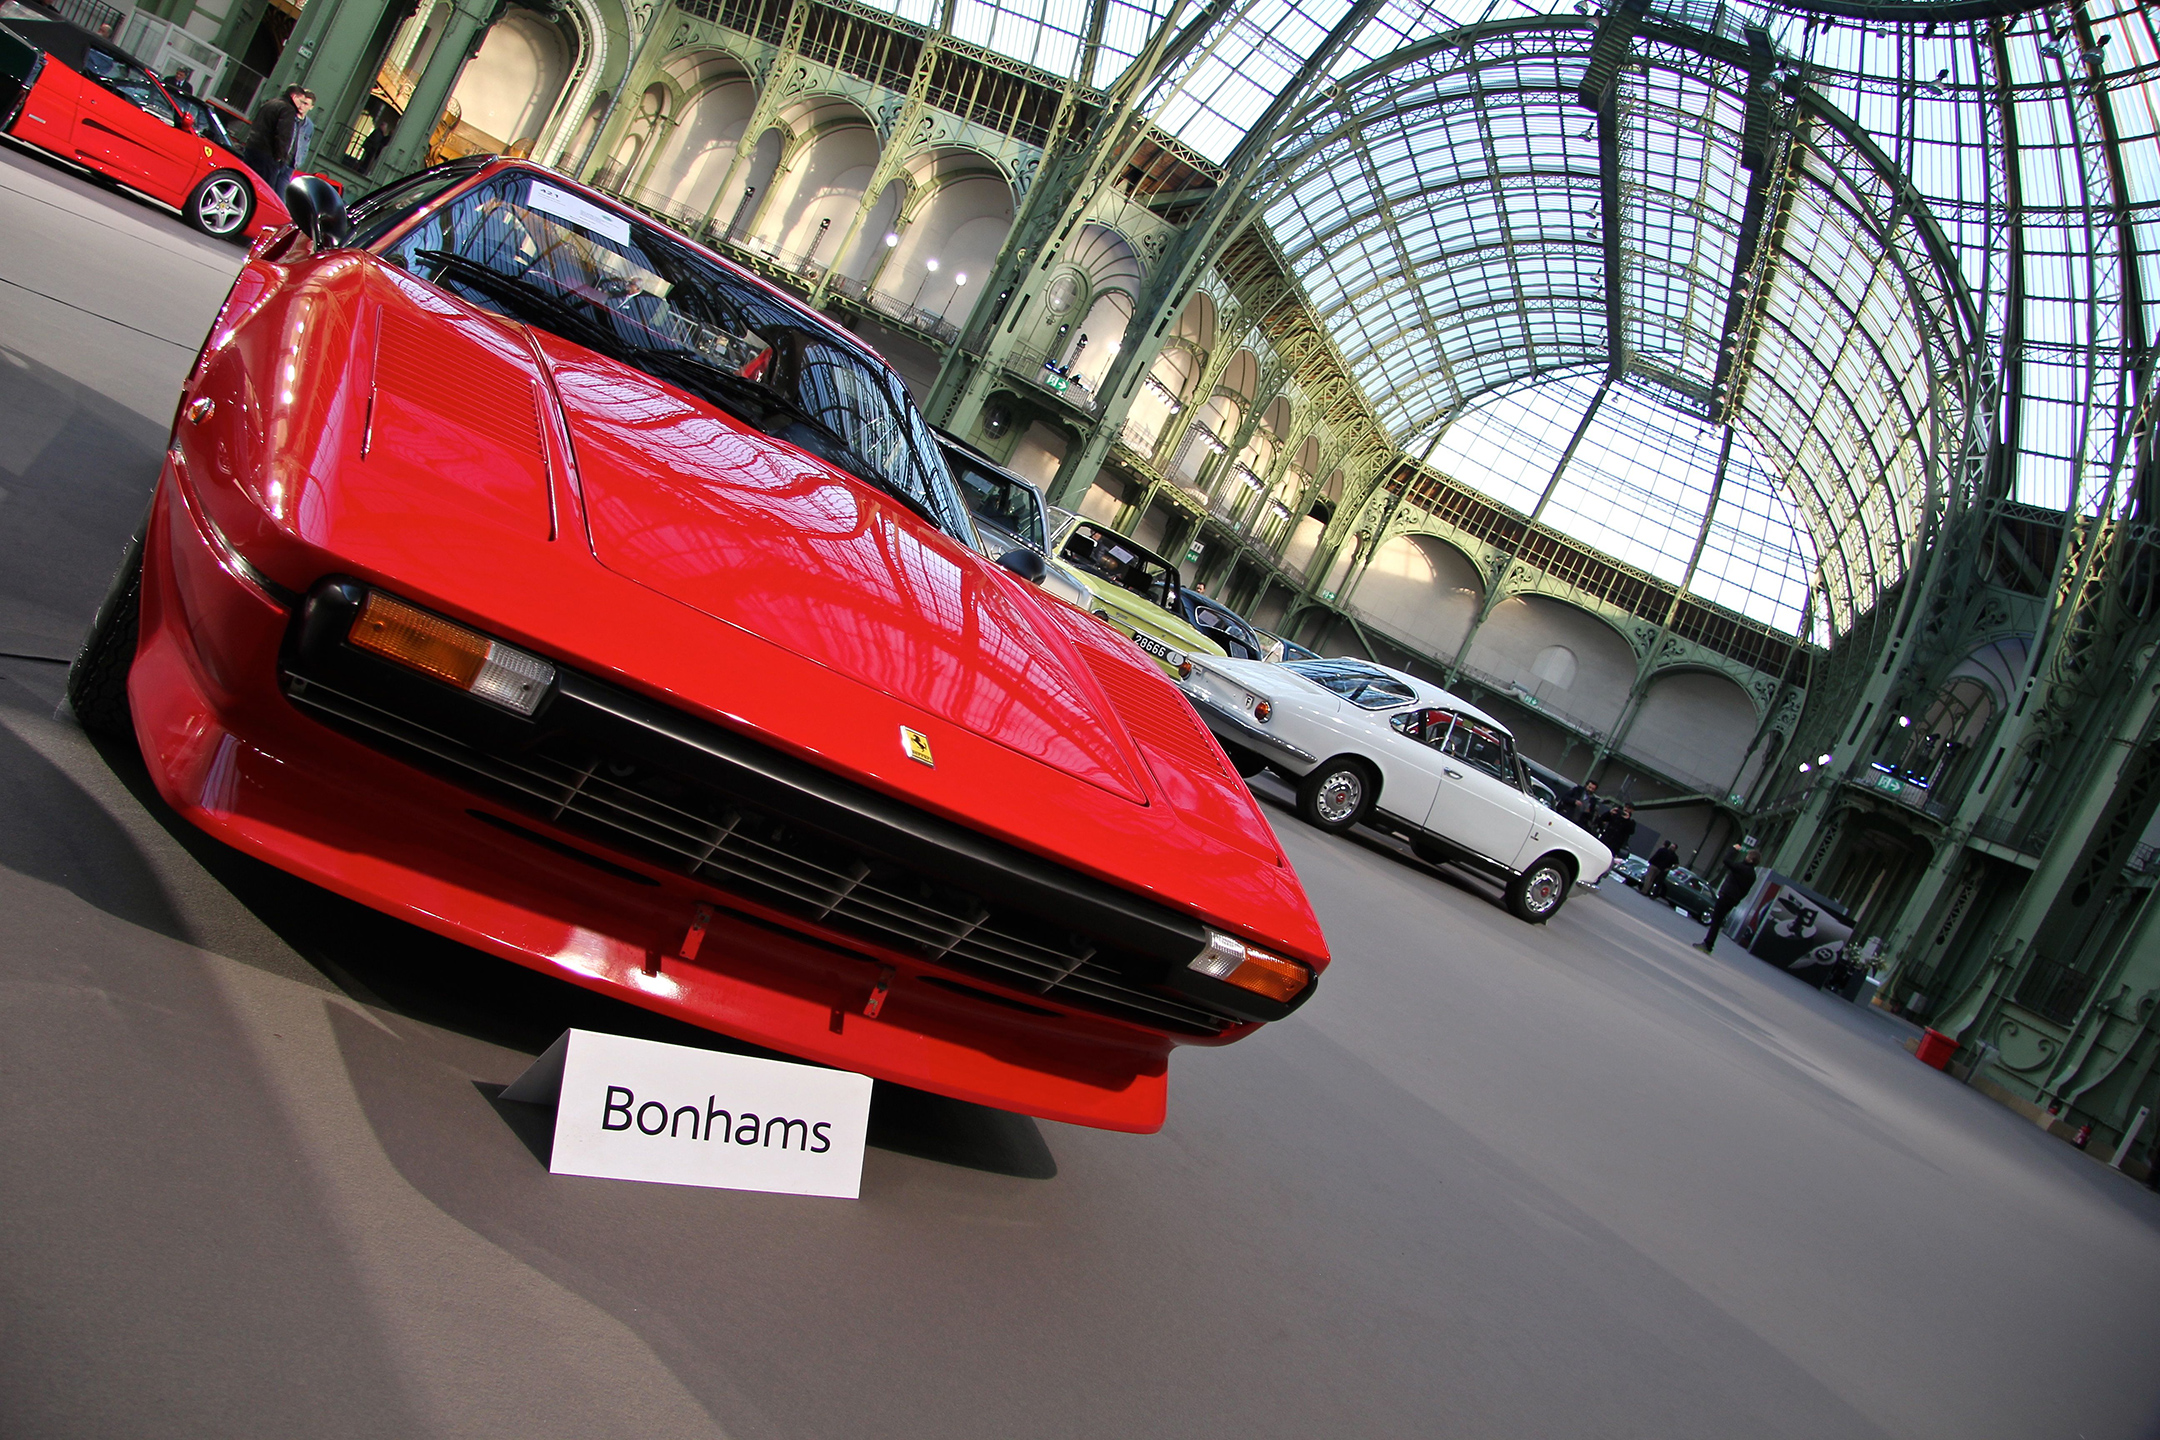 Ferrari 208 GTB 1981 - Bonhams 2017 - hall - Grand Palais - photo - Ludo Ferrari